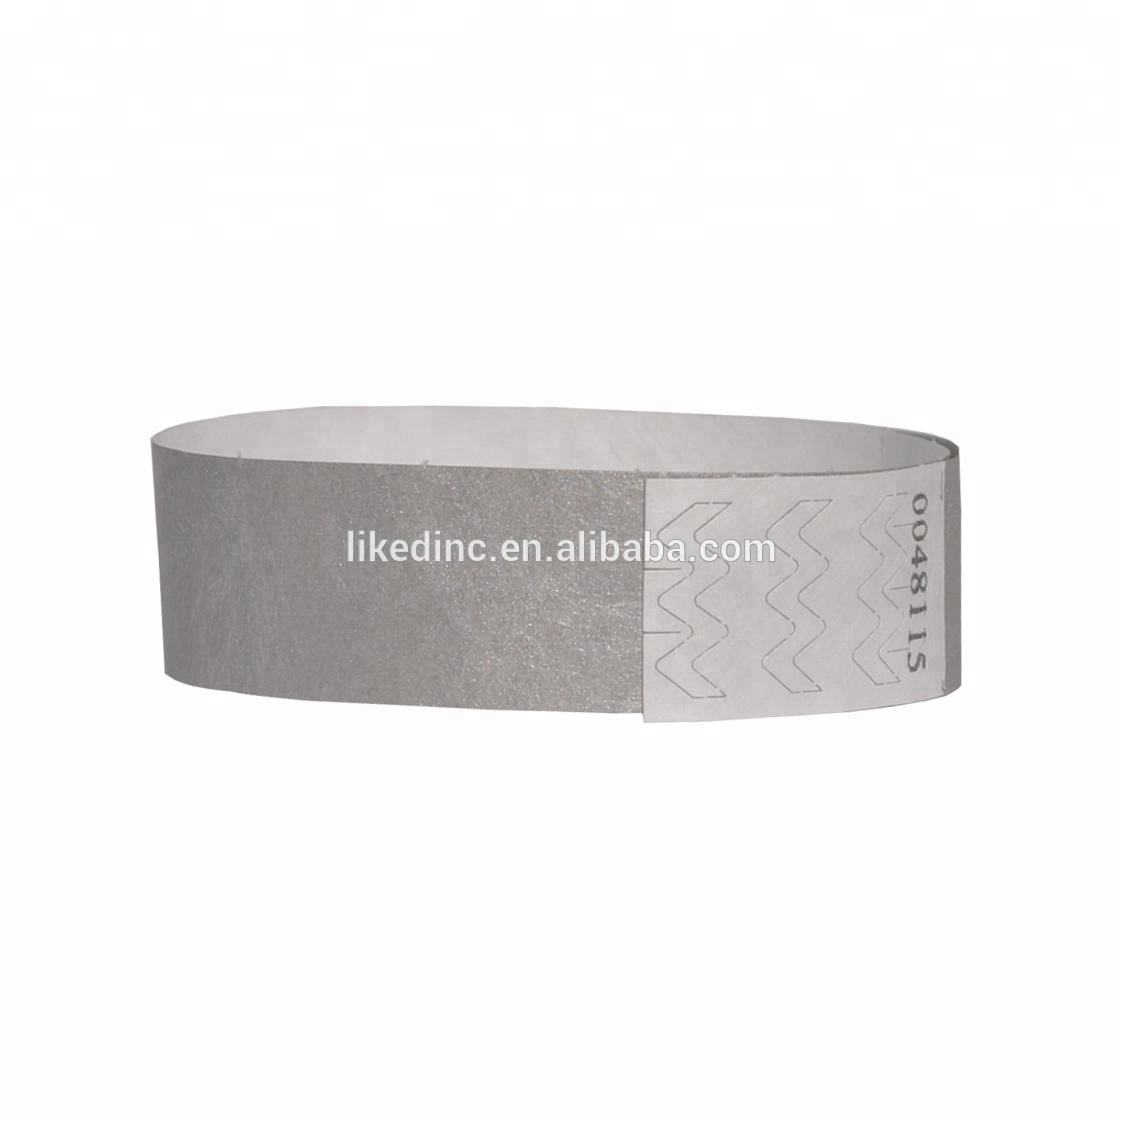 Festival gift one time use writable id barcode tyvek wristbands bracelet for events